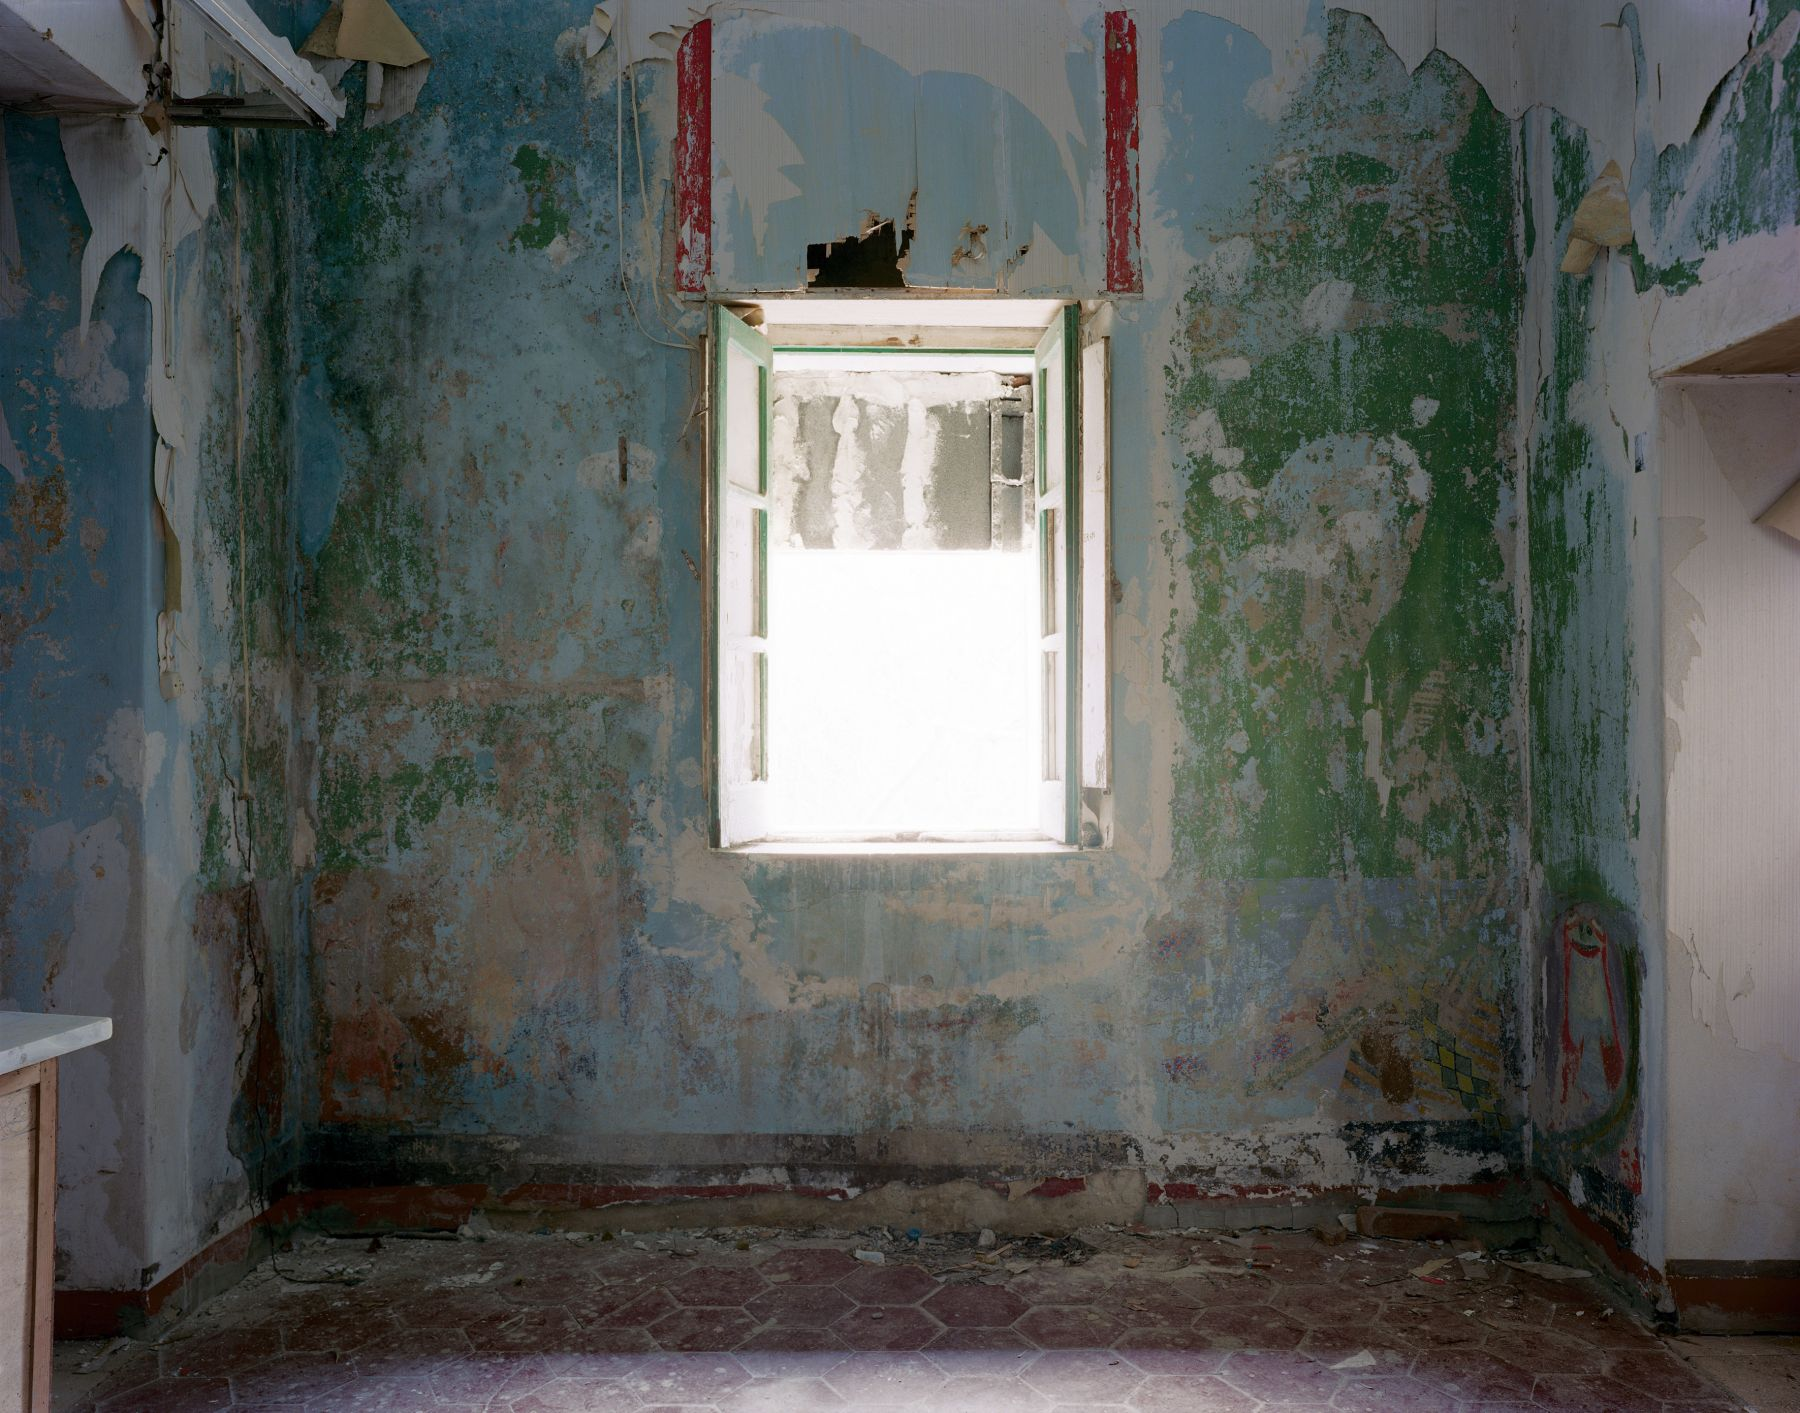 Room of Nightmares #2, 2005 c-print 18 1/2 x 23 1/3 inches, Ed. 5